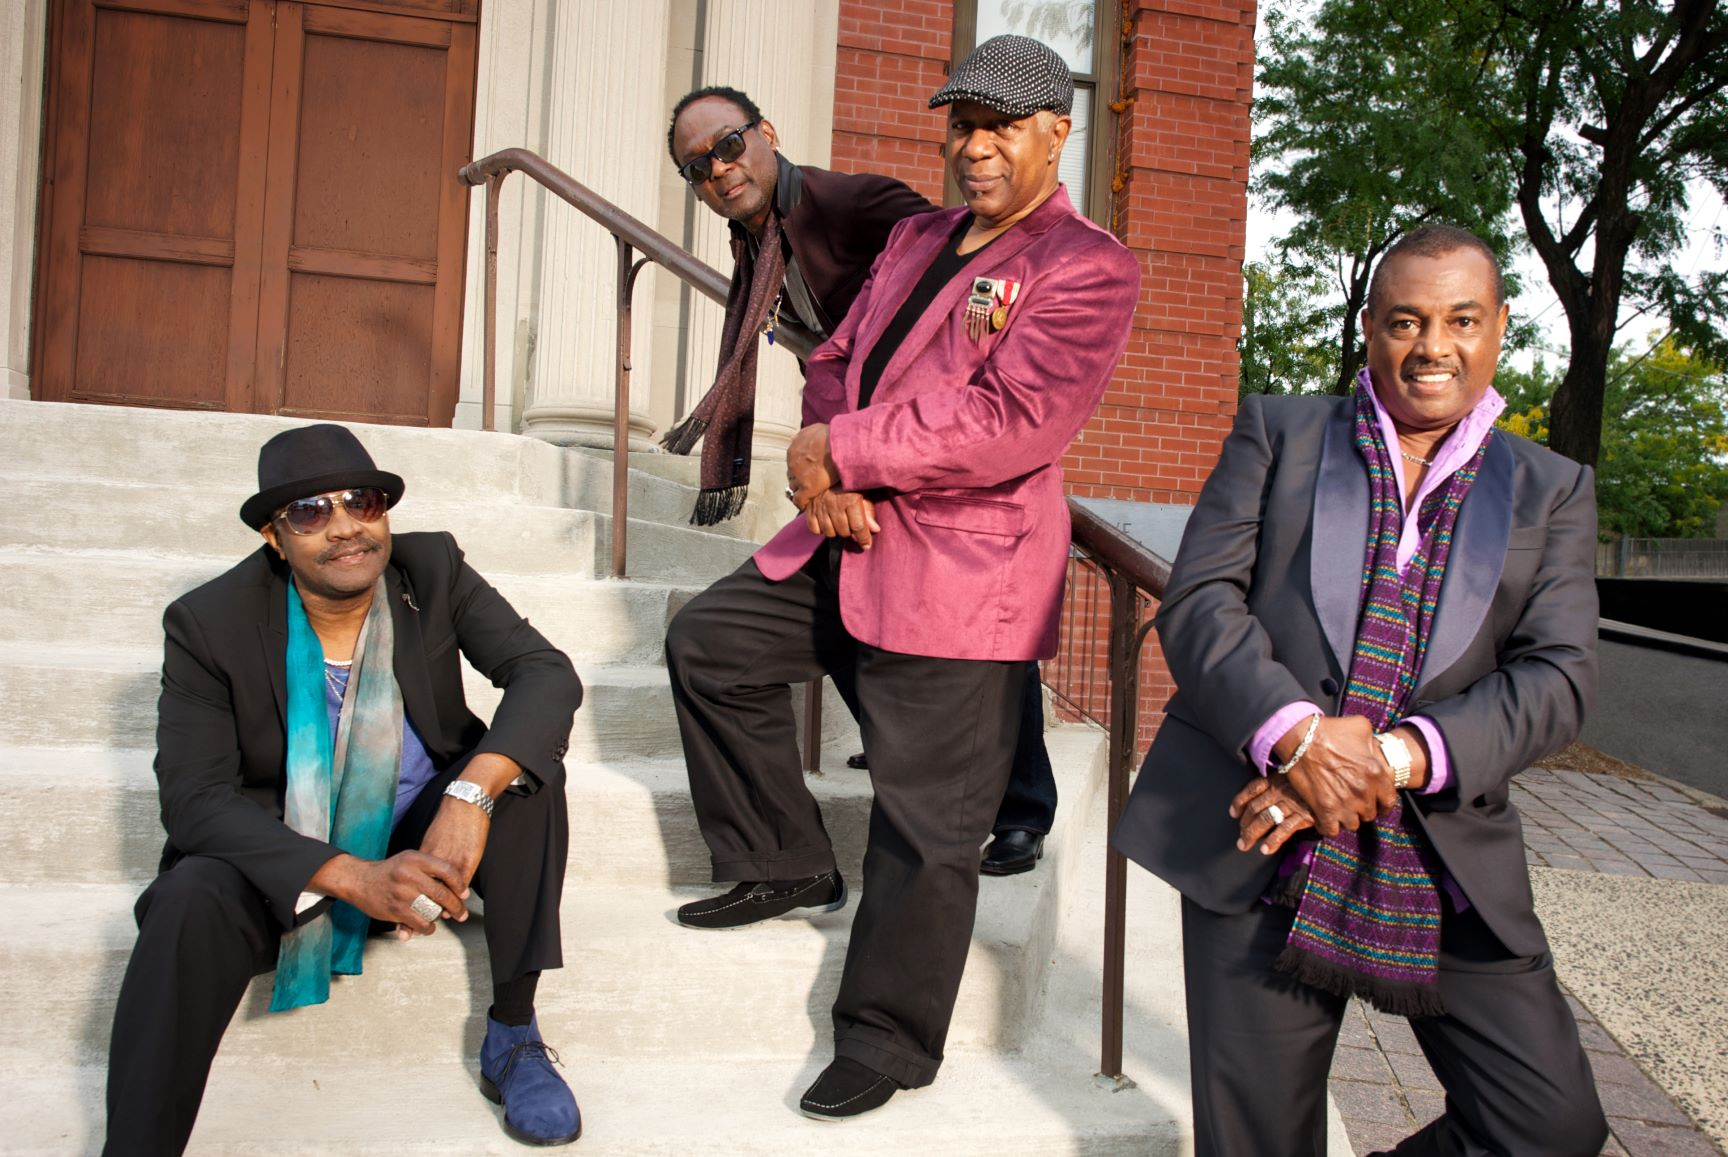 Kool the Gang c KTFA Entertainment Inc. 1